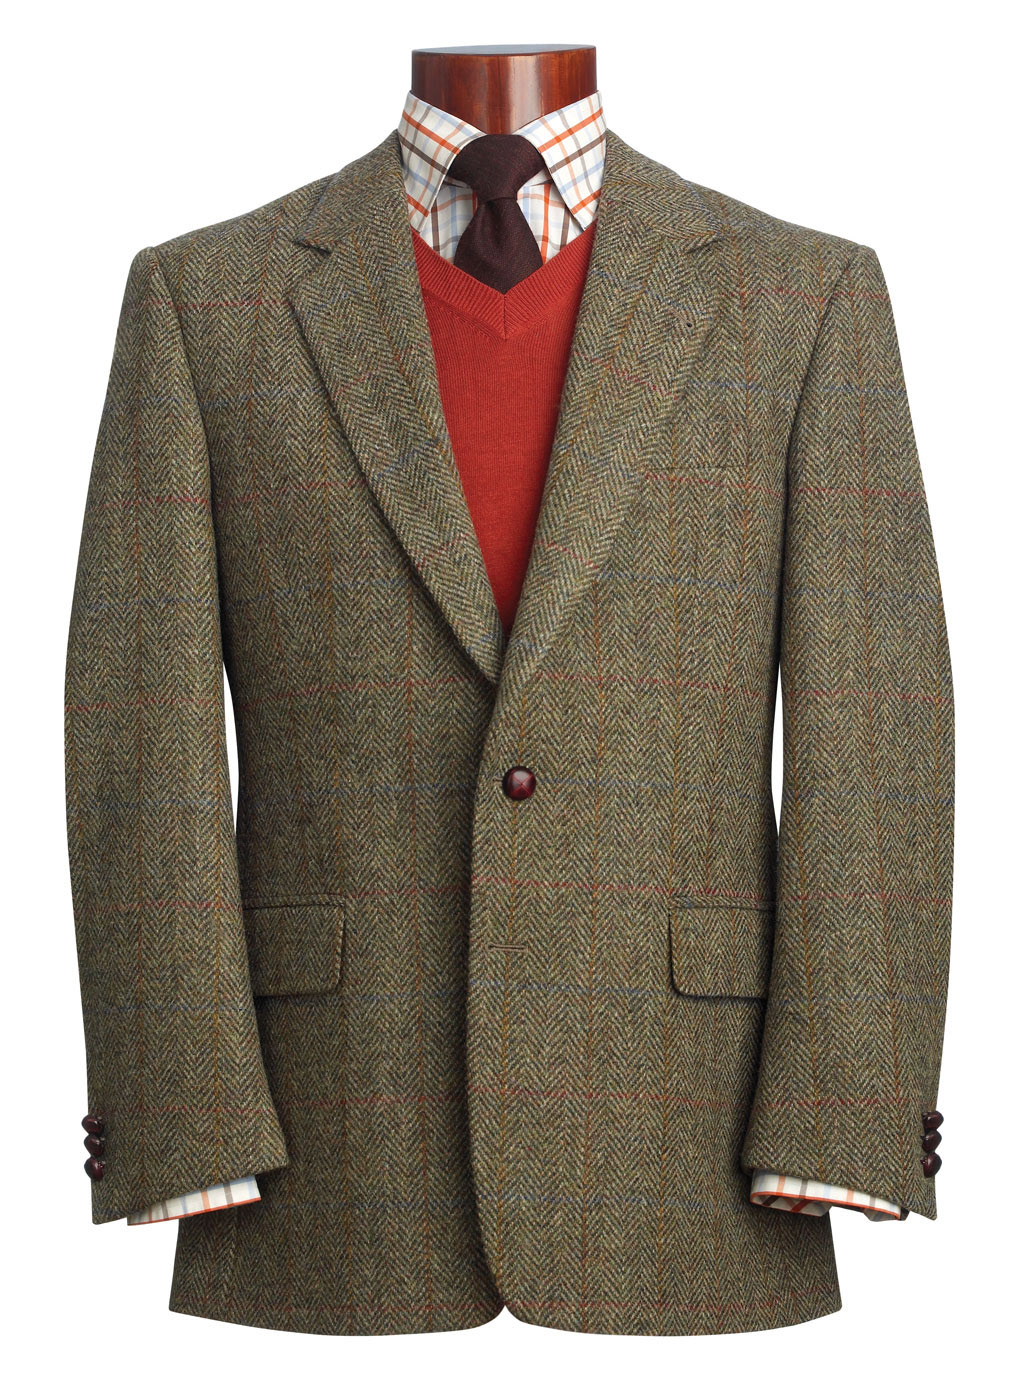 Твидовый пиджак Harris Tweed | Шерстяные жакеты